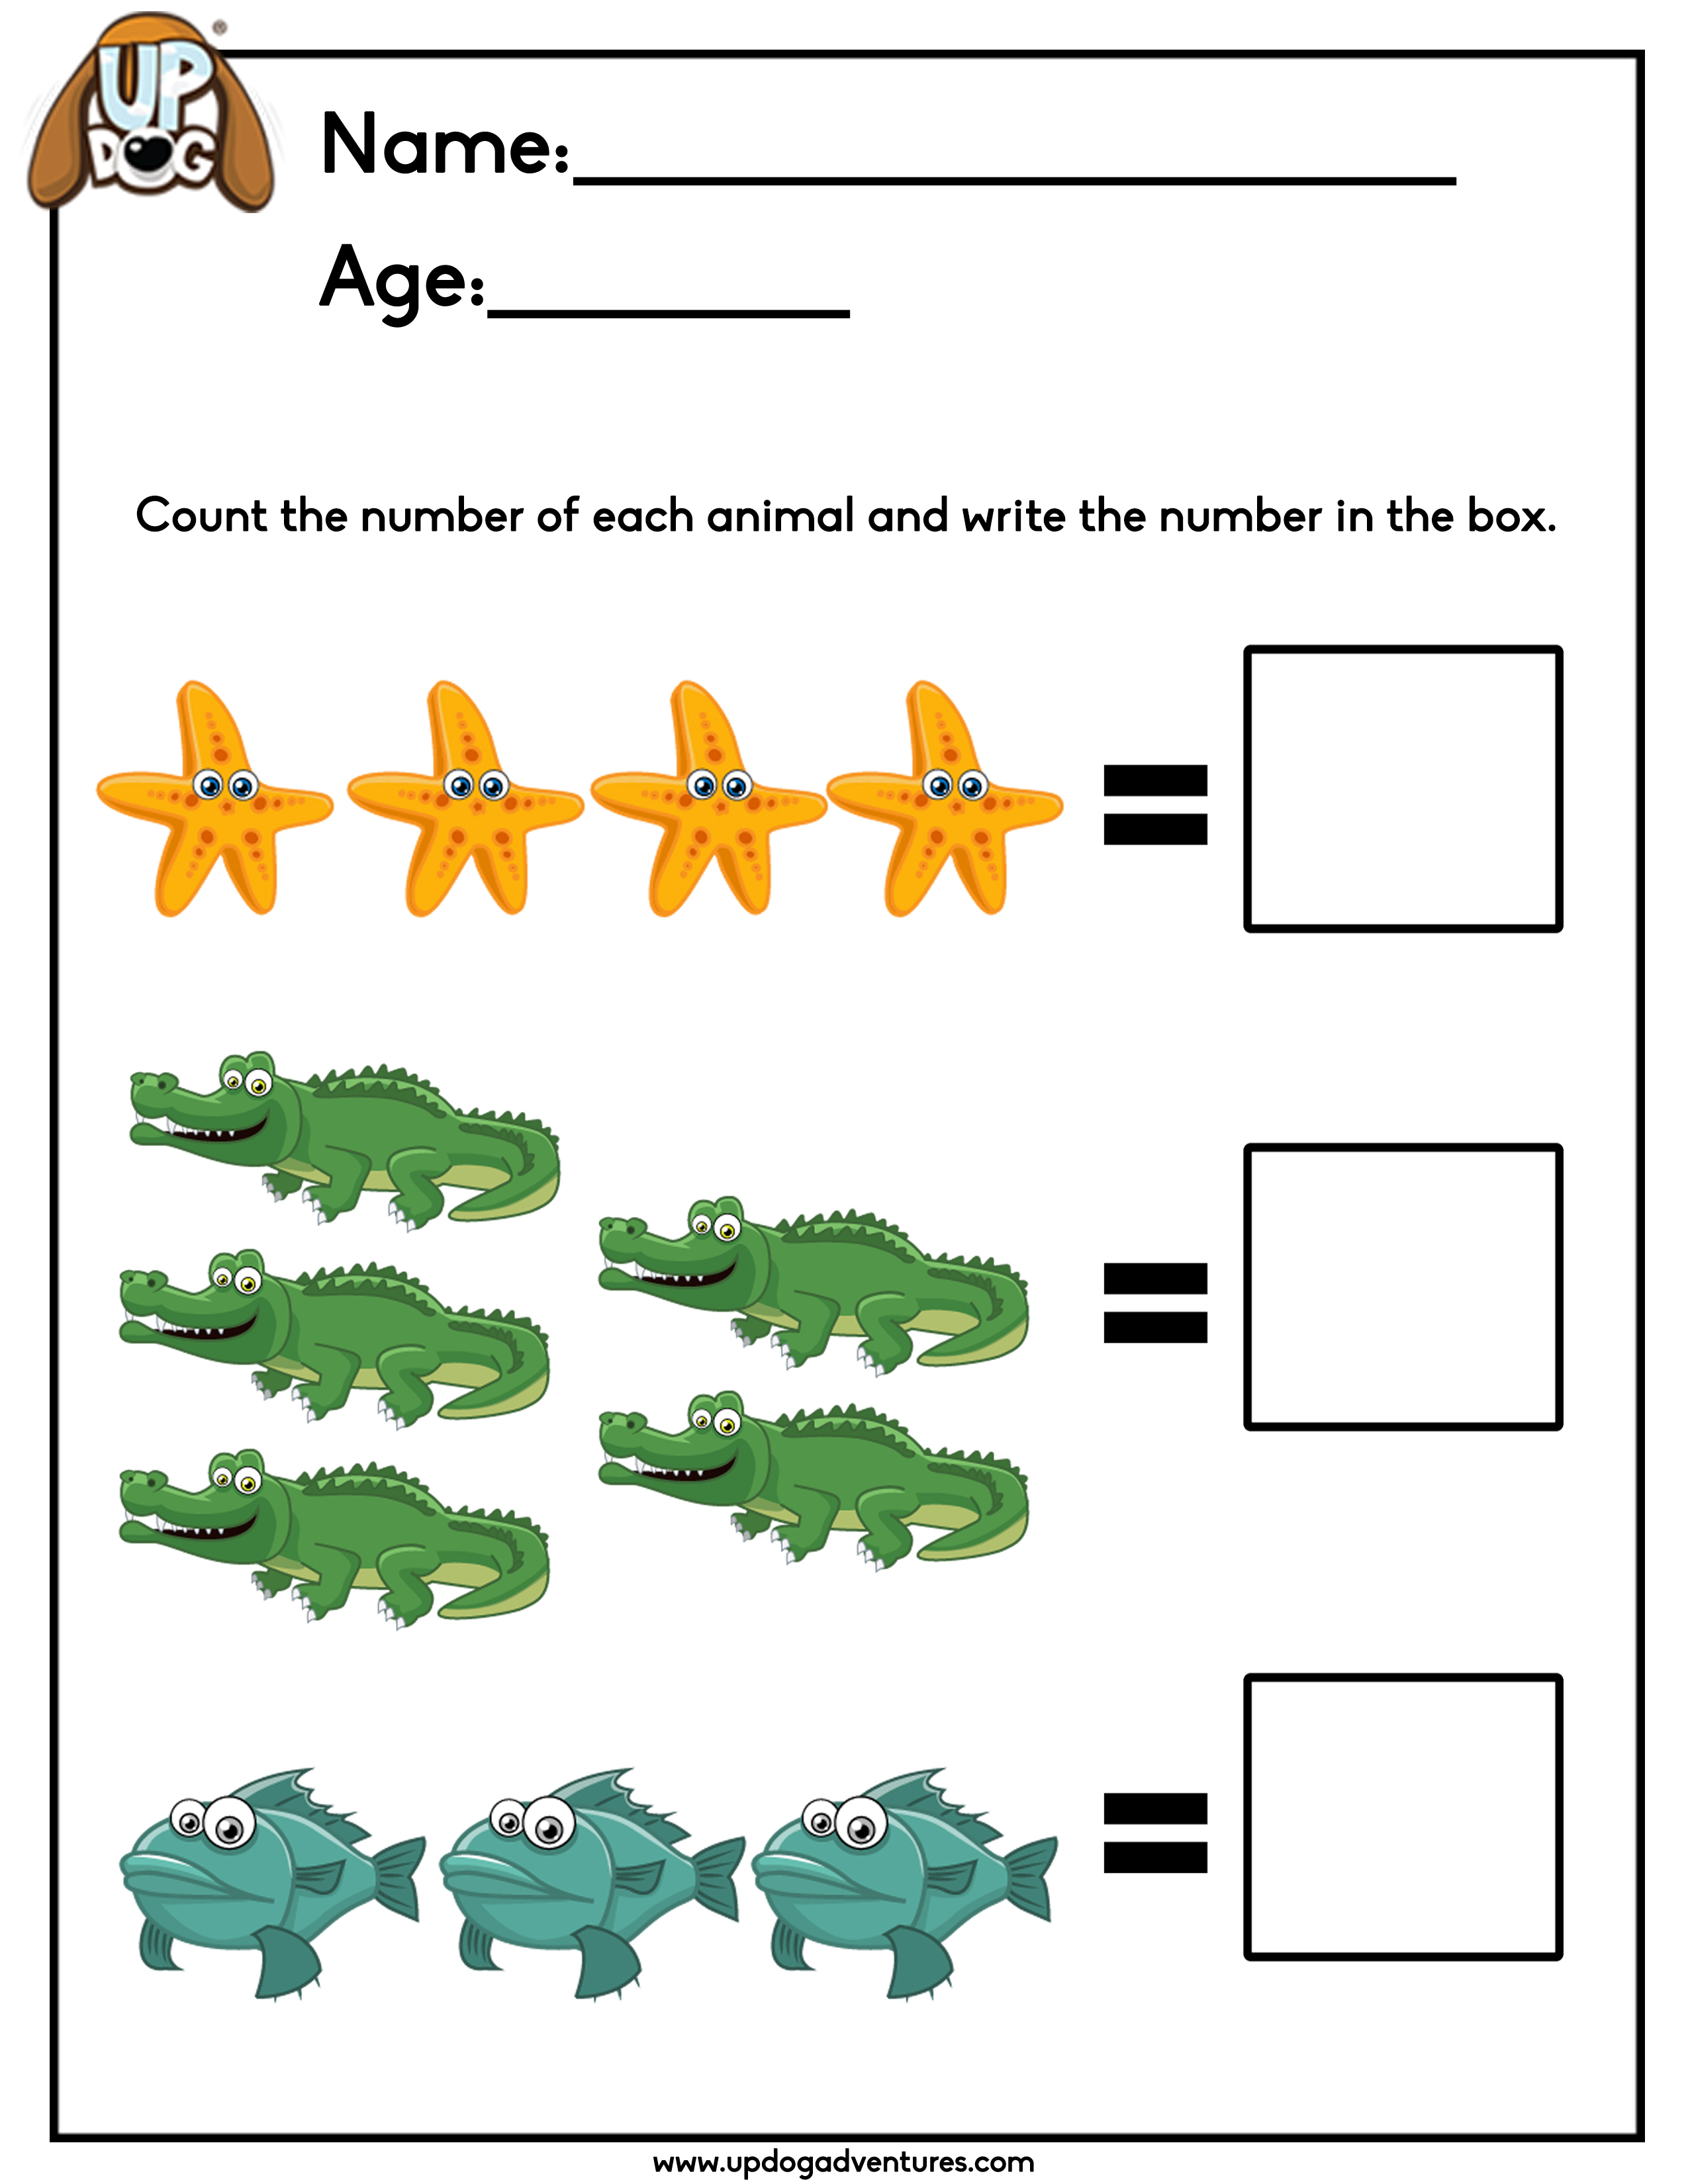 mathematics-count-the-animals-6